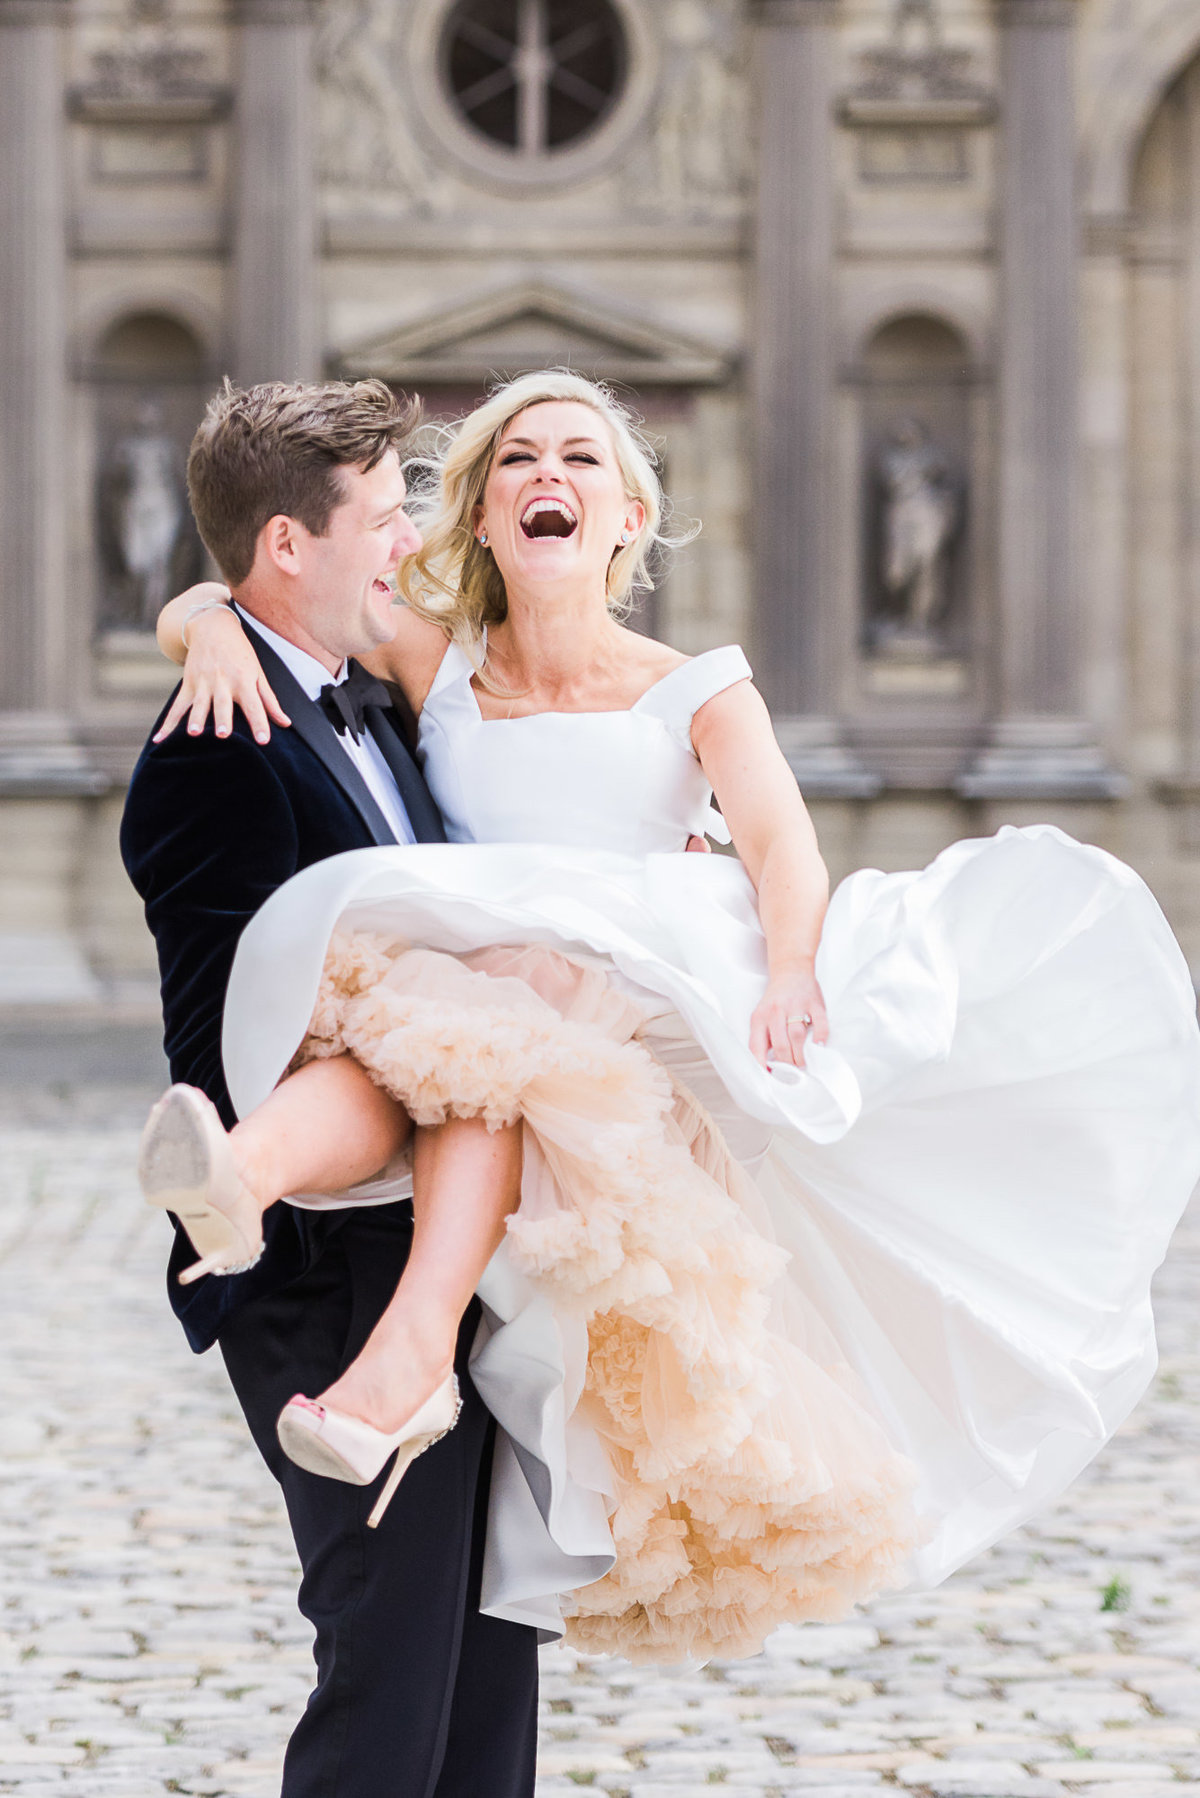 Paris_Wedding_Photographer_159